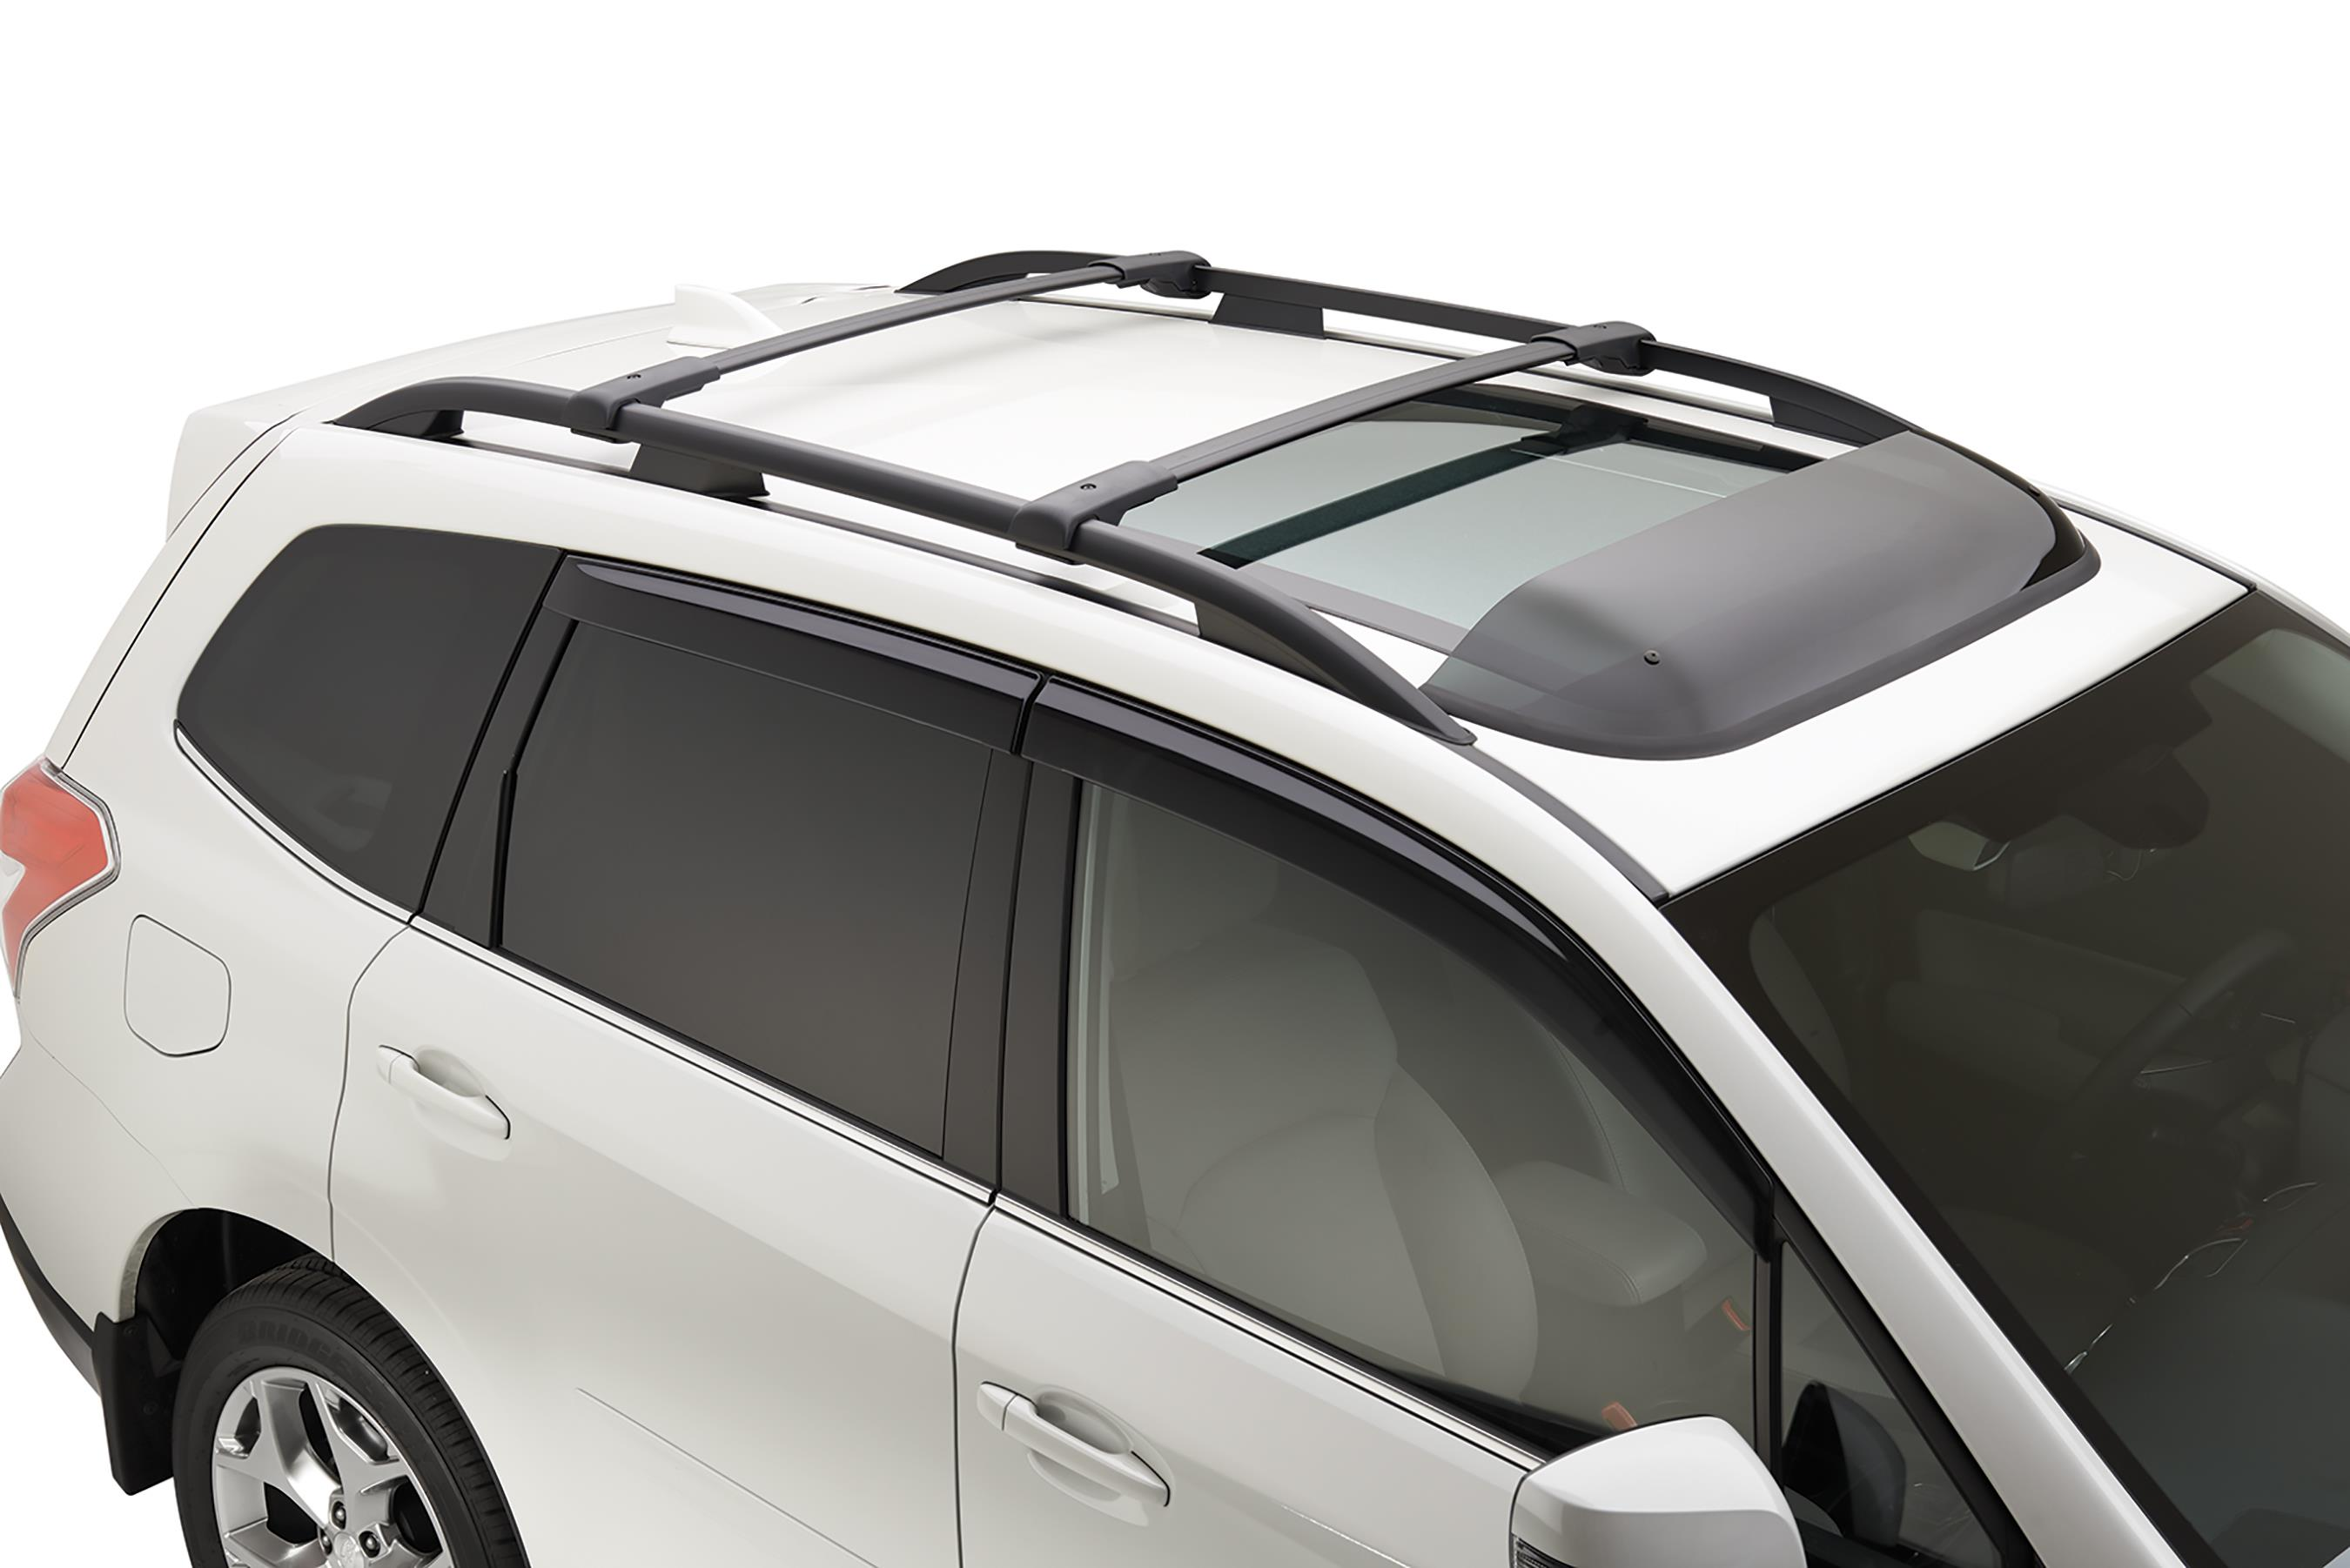 Front Cross Bar Assembly image for your 2011 Subaru Forester